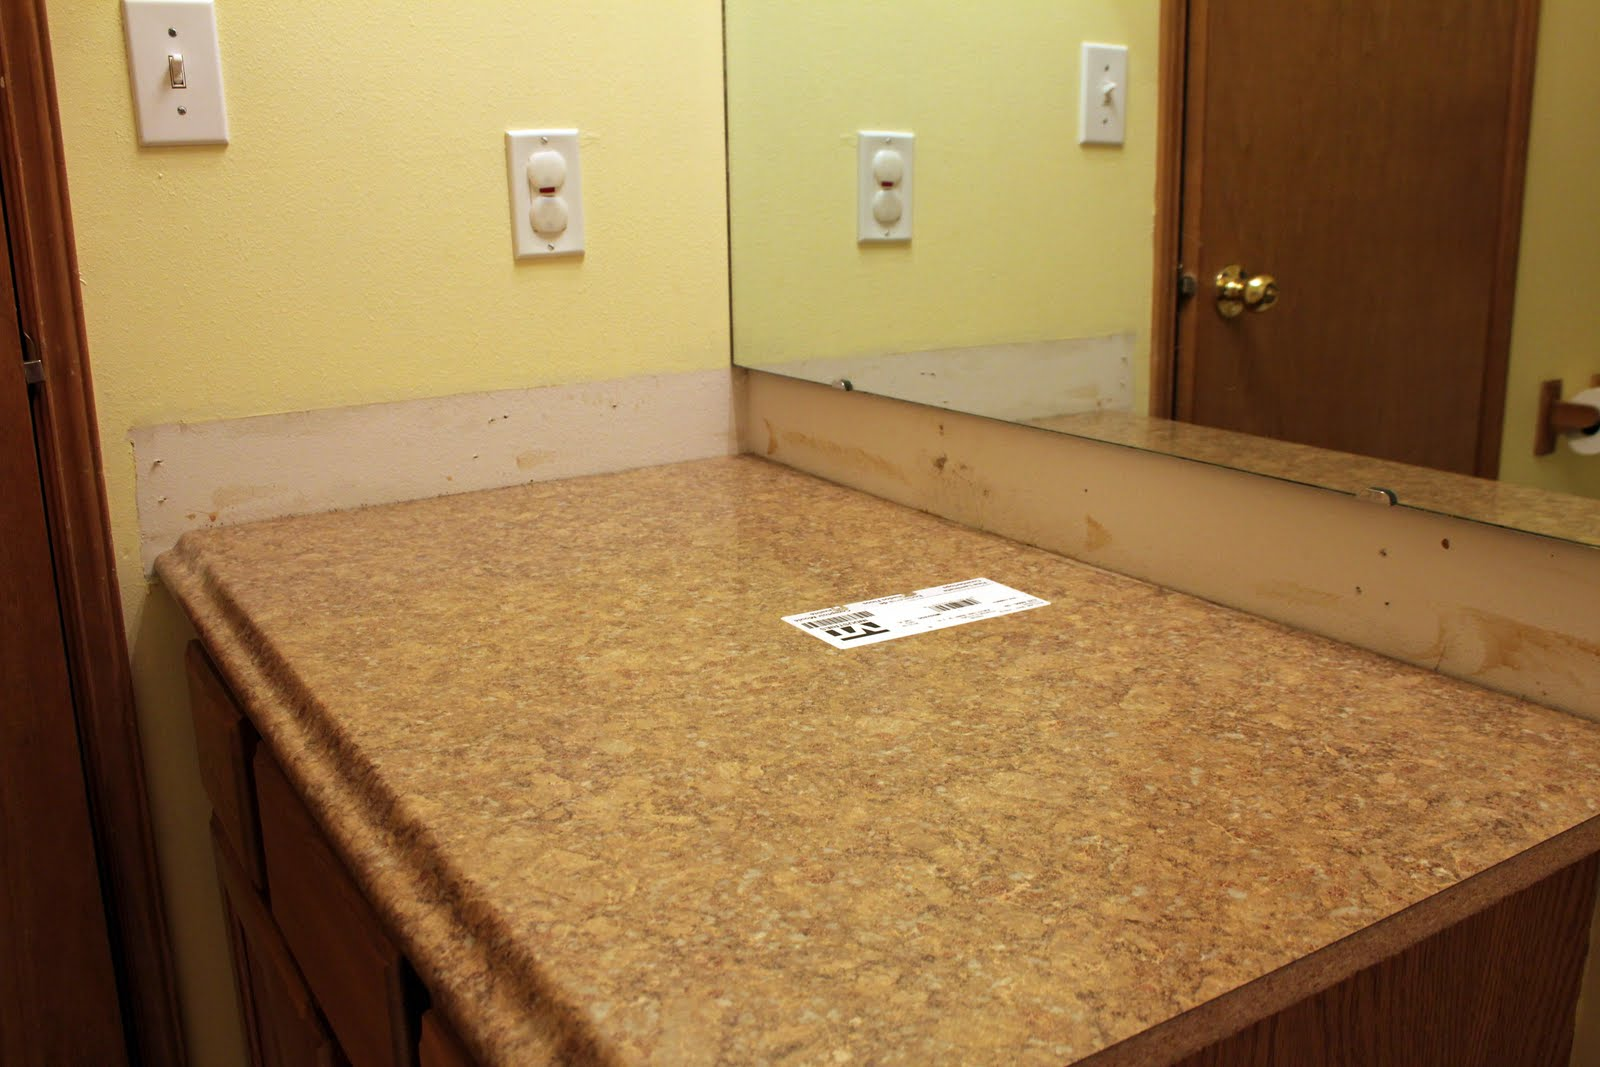 Laminate Countertops Without Backsplash How To Install A 40 Vinyl Peel N Stick Flooring As A